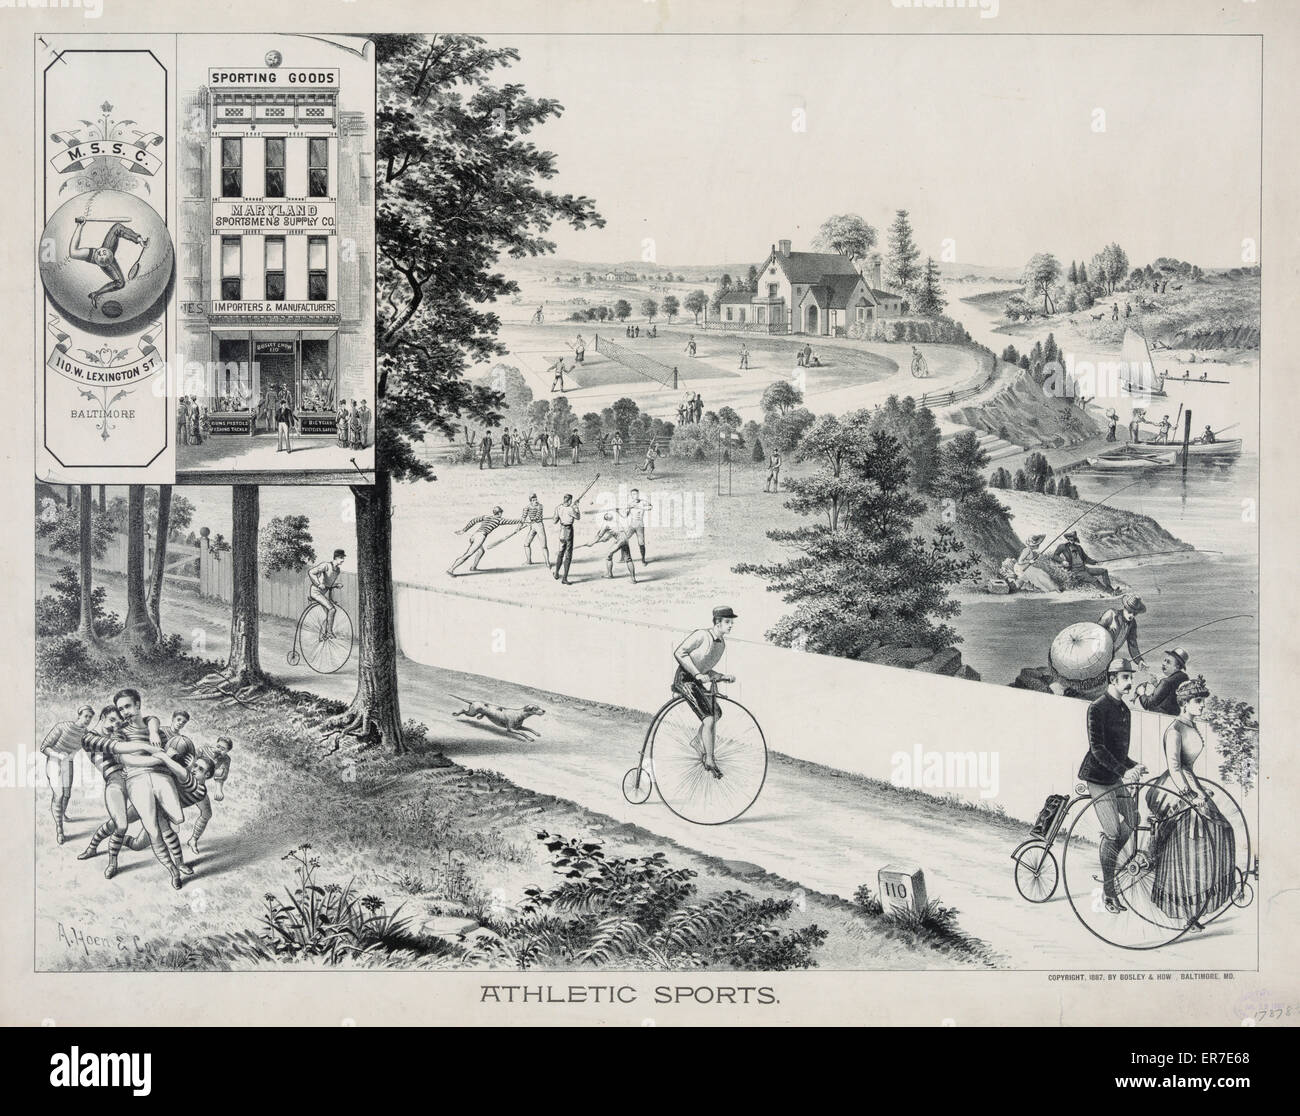 Athletic sports. Date c1887 July 12. - Stock Image